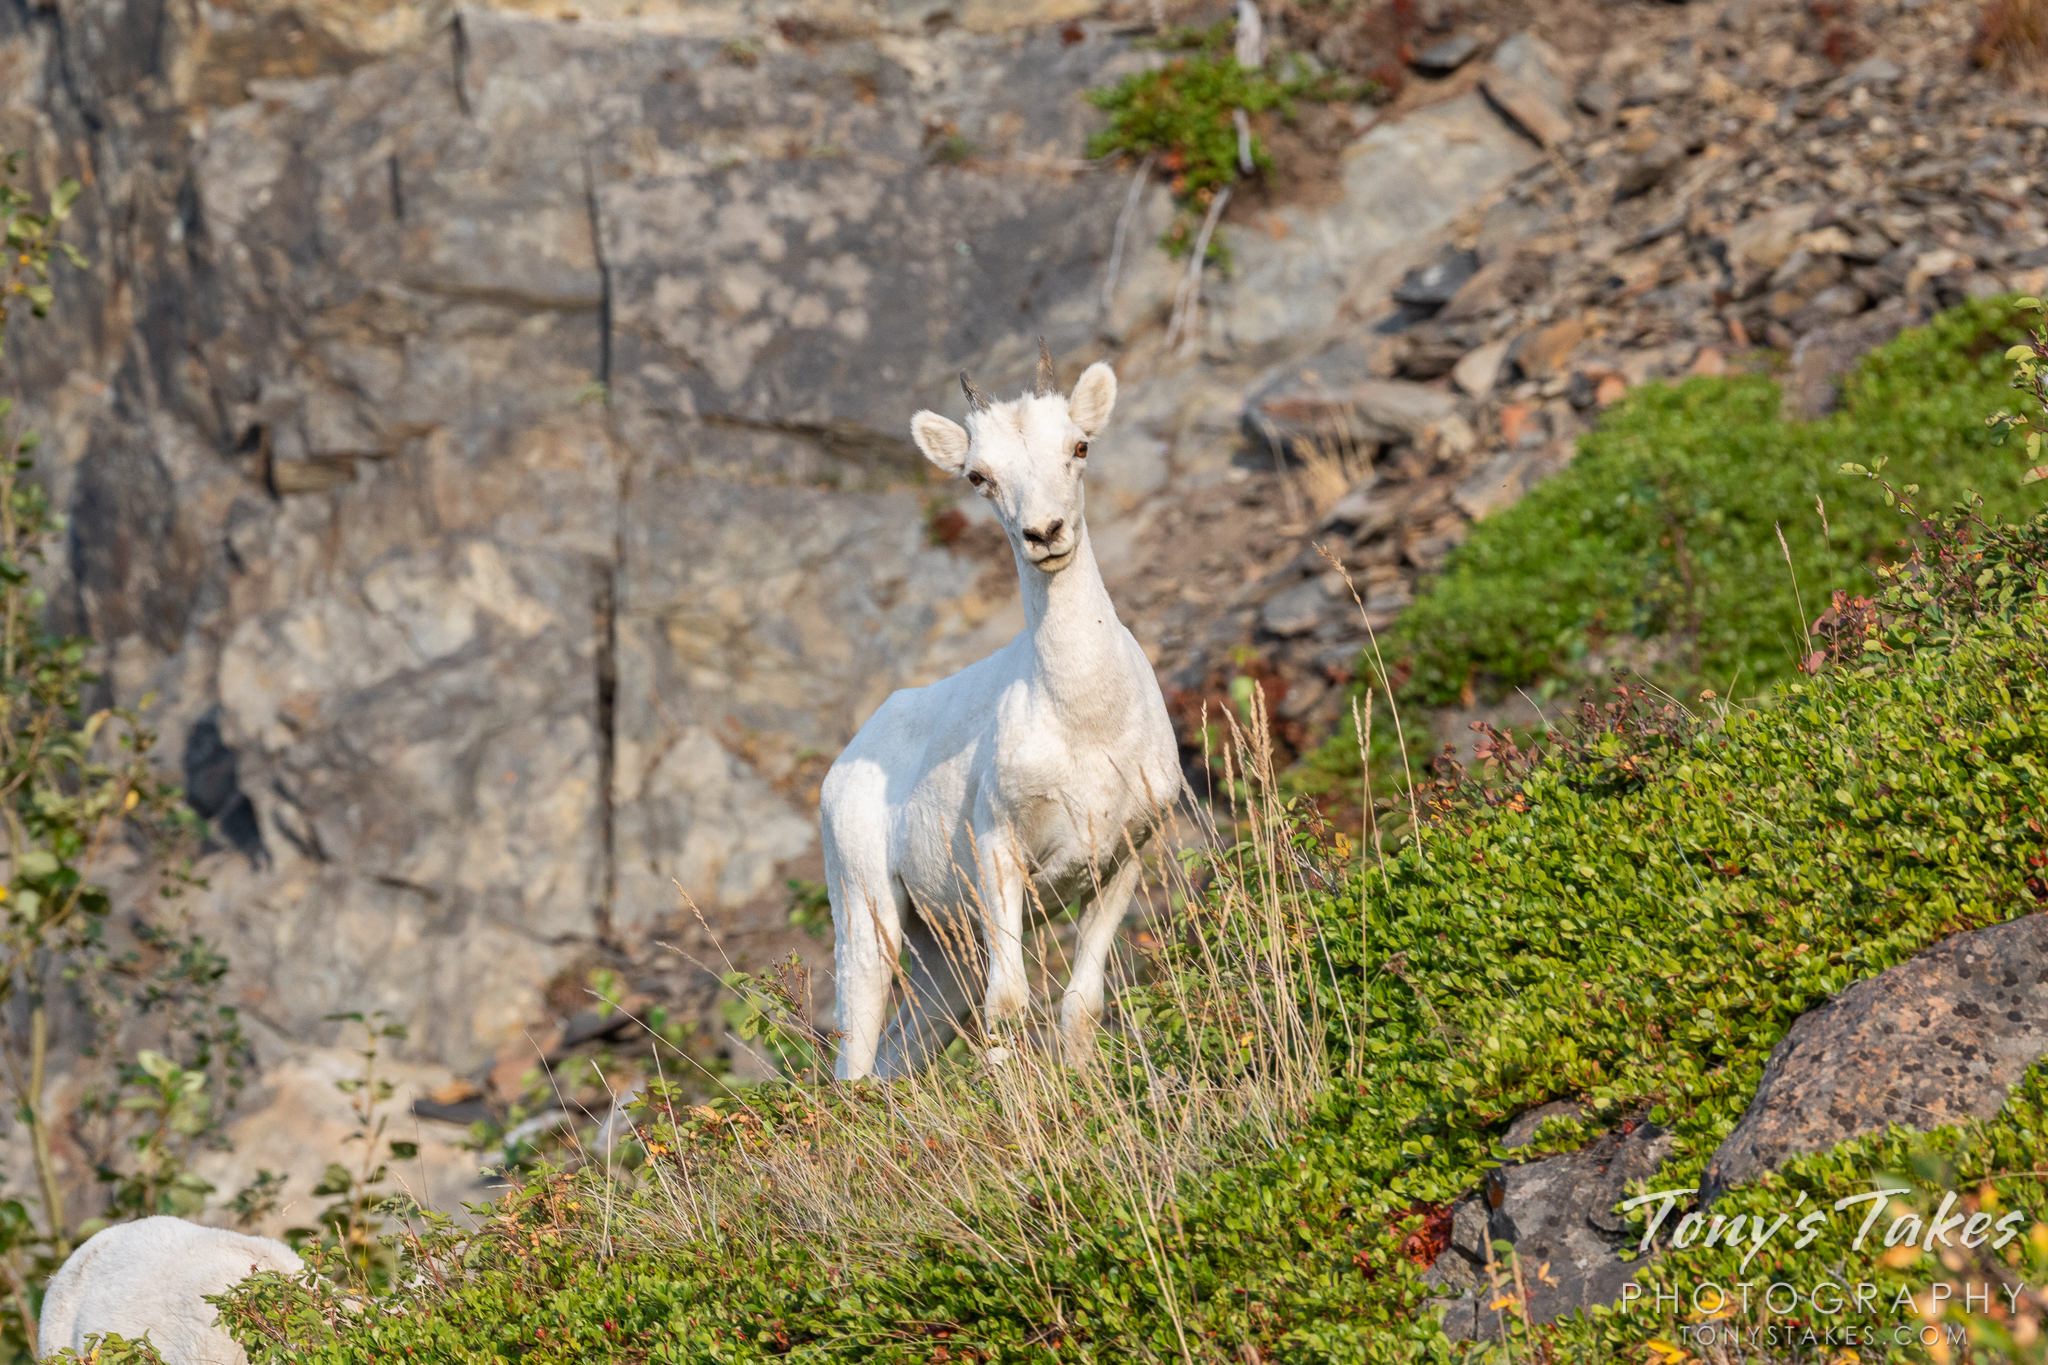 Curious little dall sheep